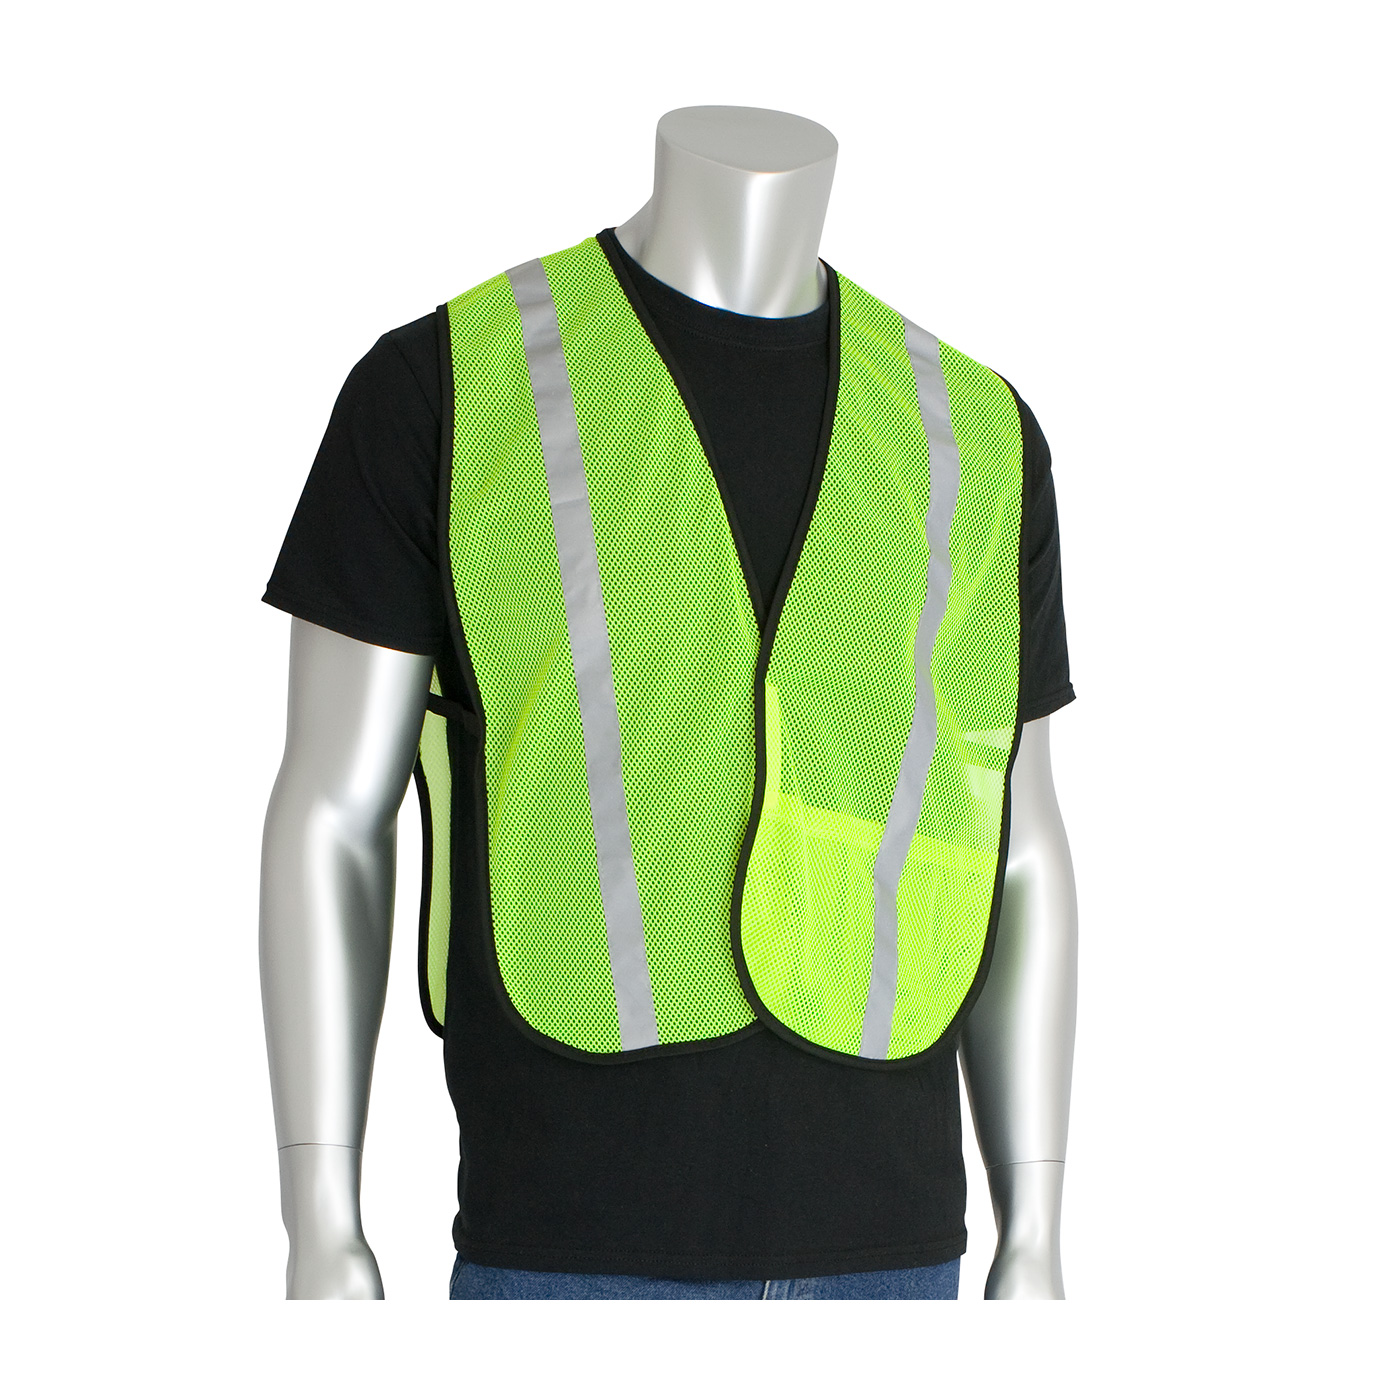 #300-EVOR-E PIP® Non-ANSI Hi-Viz Lime Yellow One Pocket Mesh Safety Vests with 1` Reflective Tape